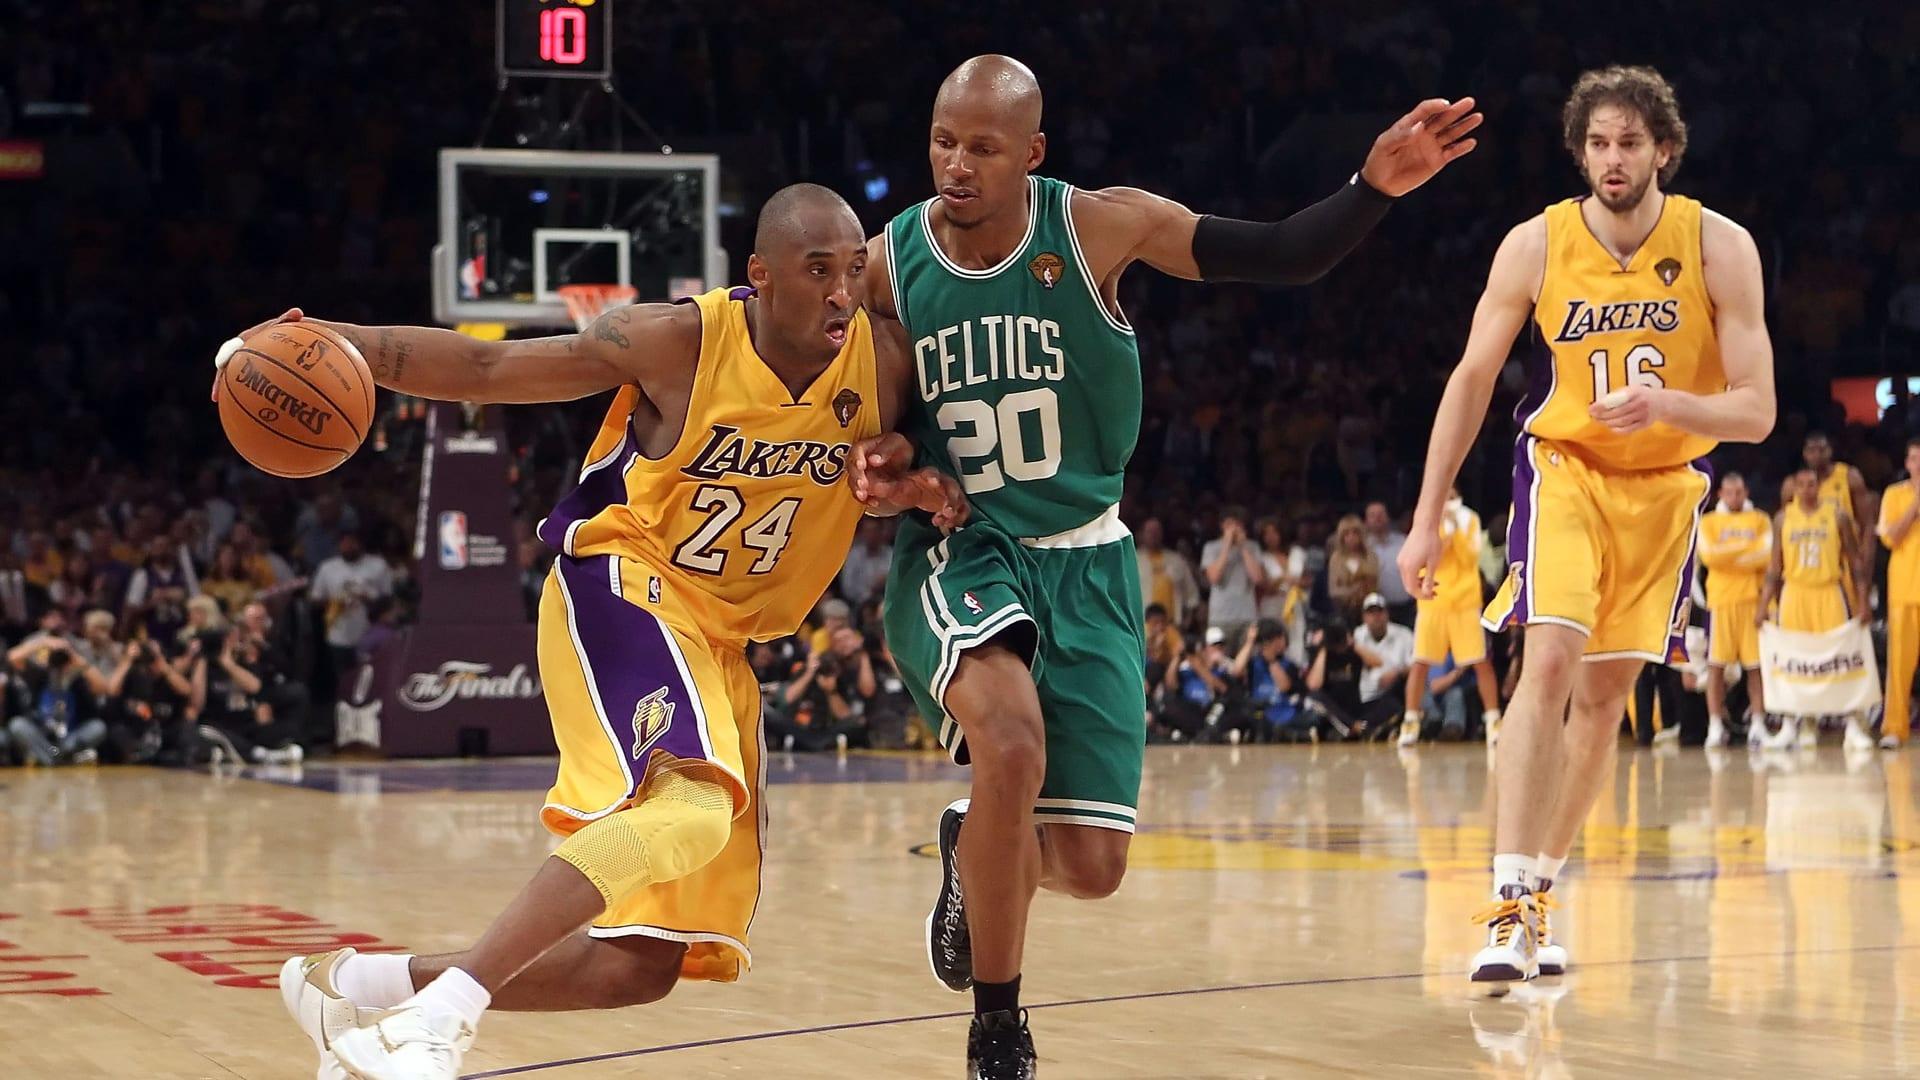 2010 NBA Finals Flashback: Kobe Bryant And Lakers Get Their Revenge Against Celtics